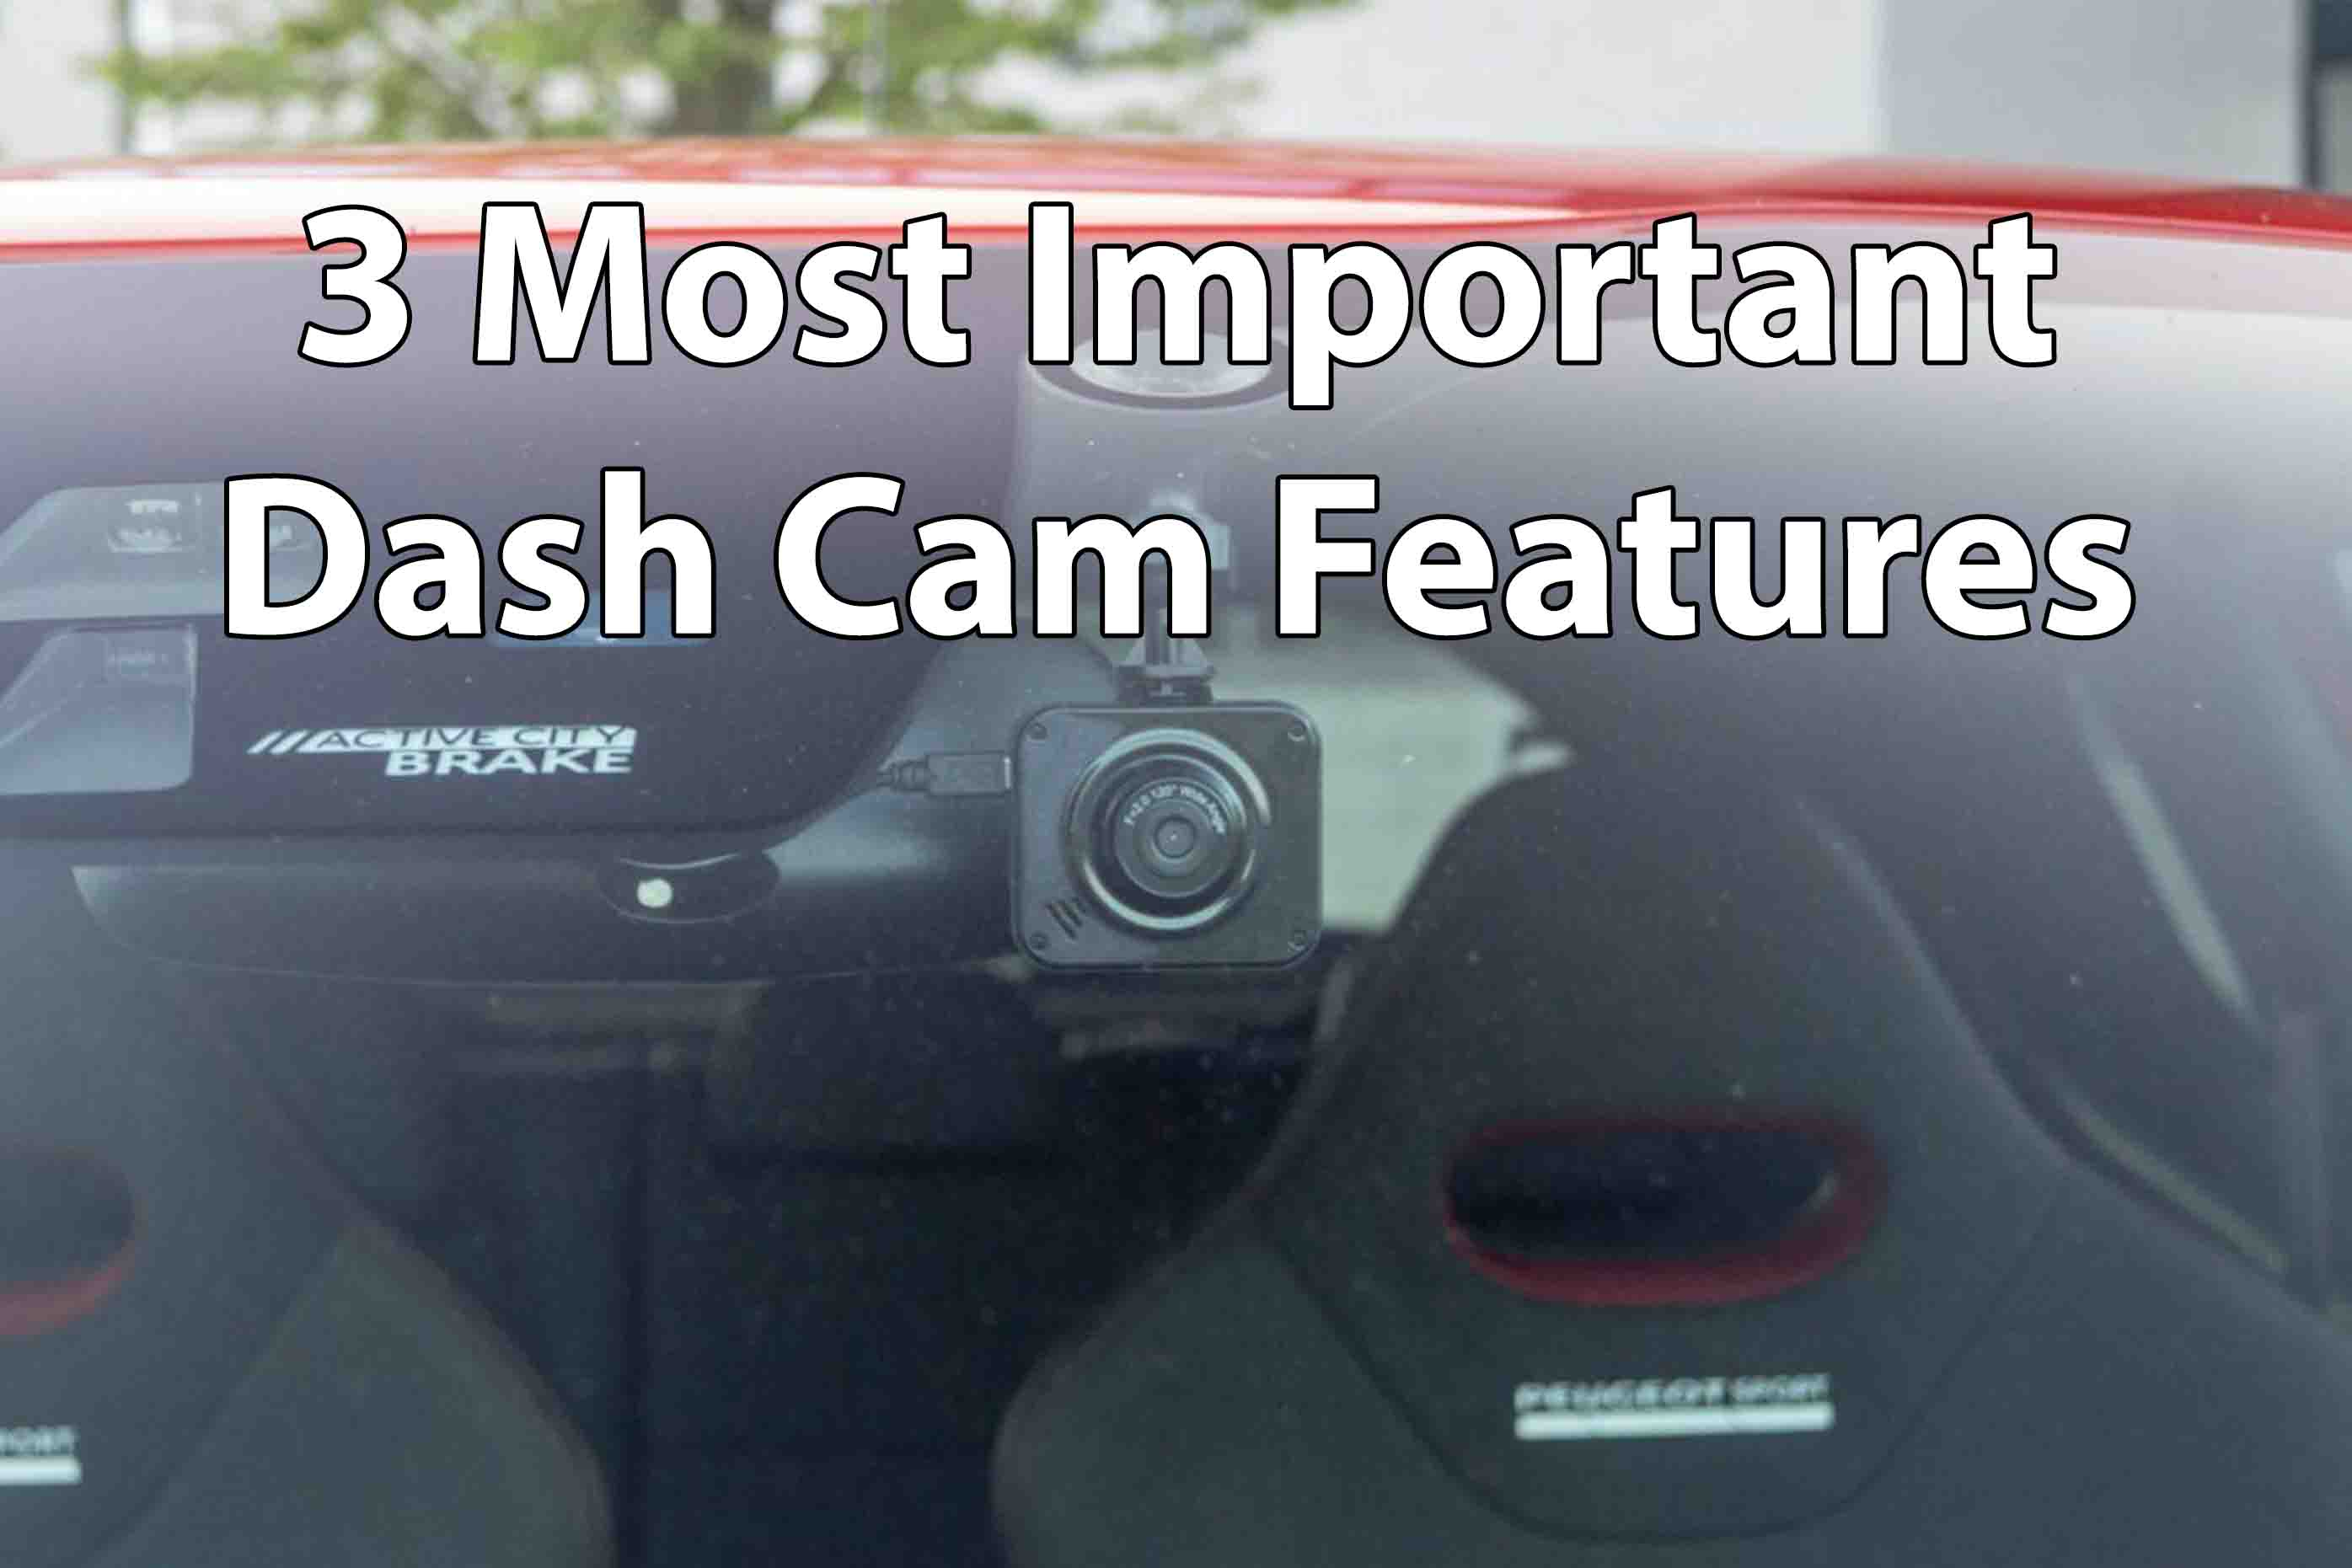 Most Important Dash Cam Features